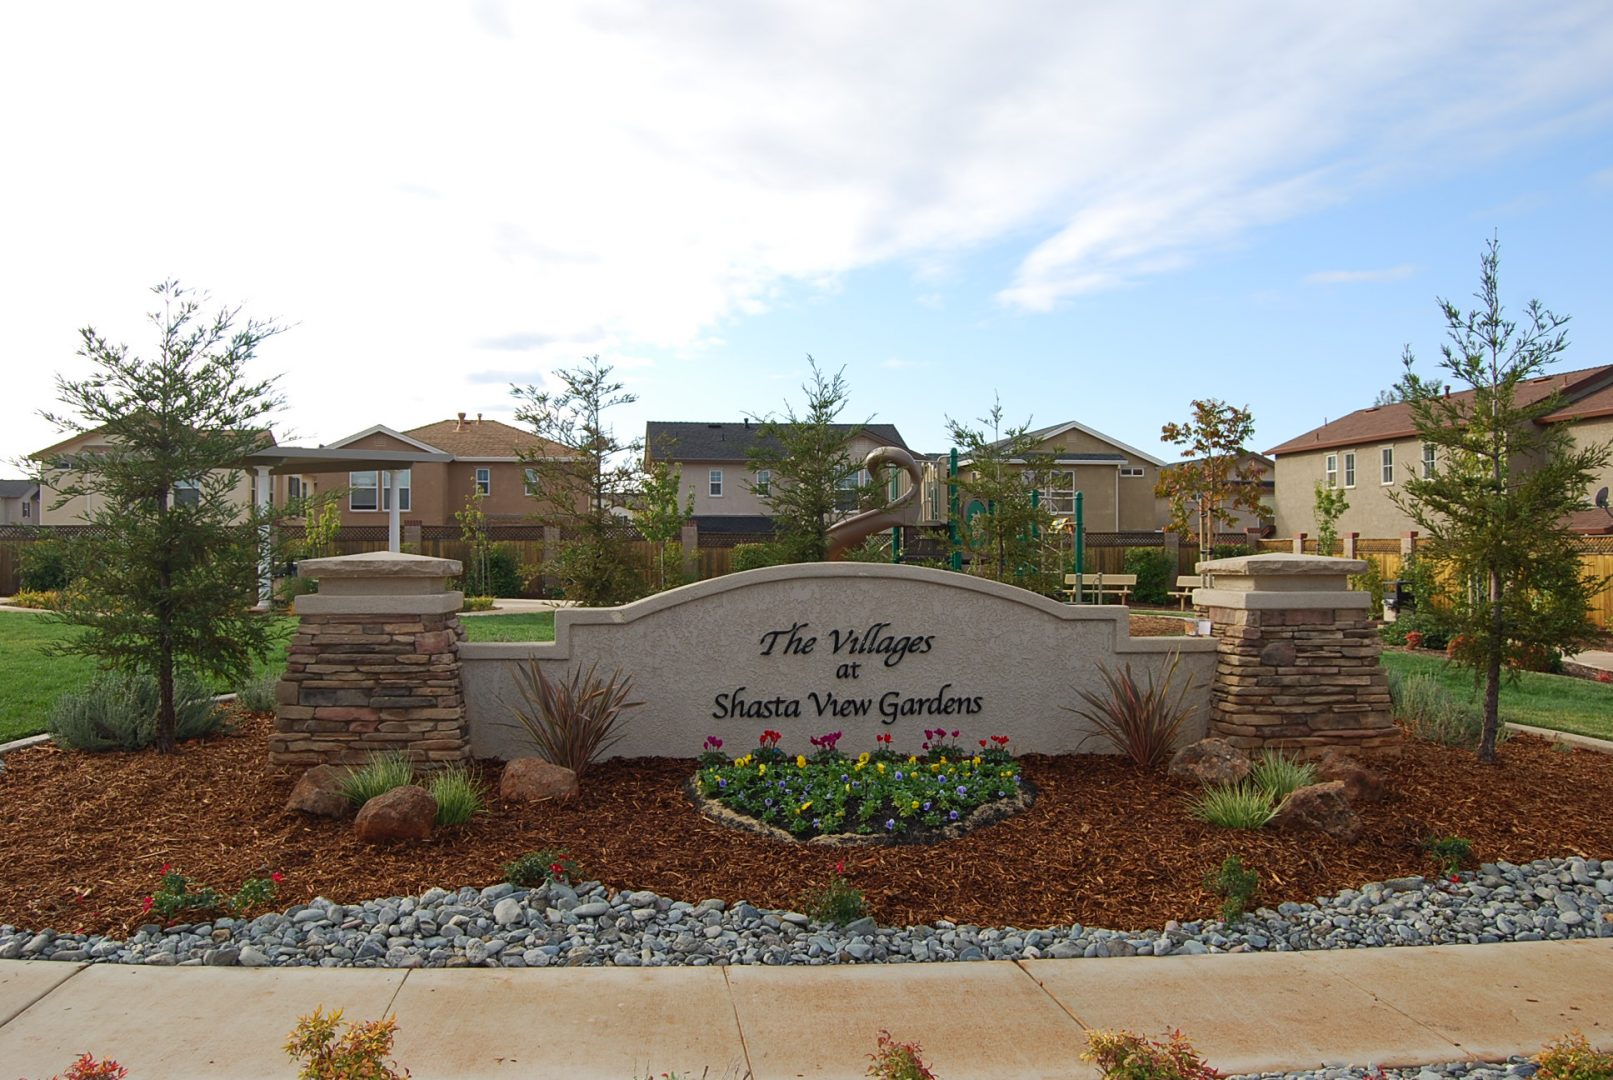 Residential Projects - The Villages at Shasta View Gardens